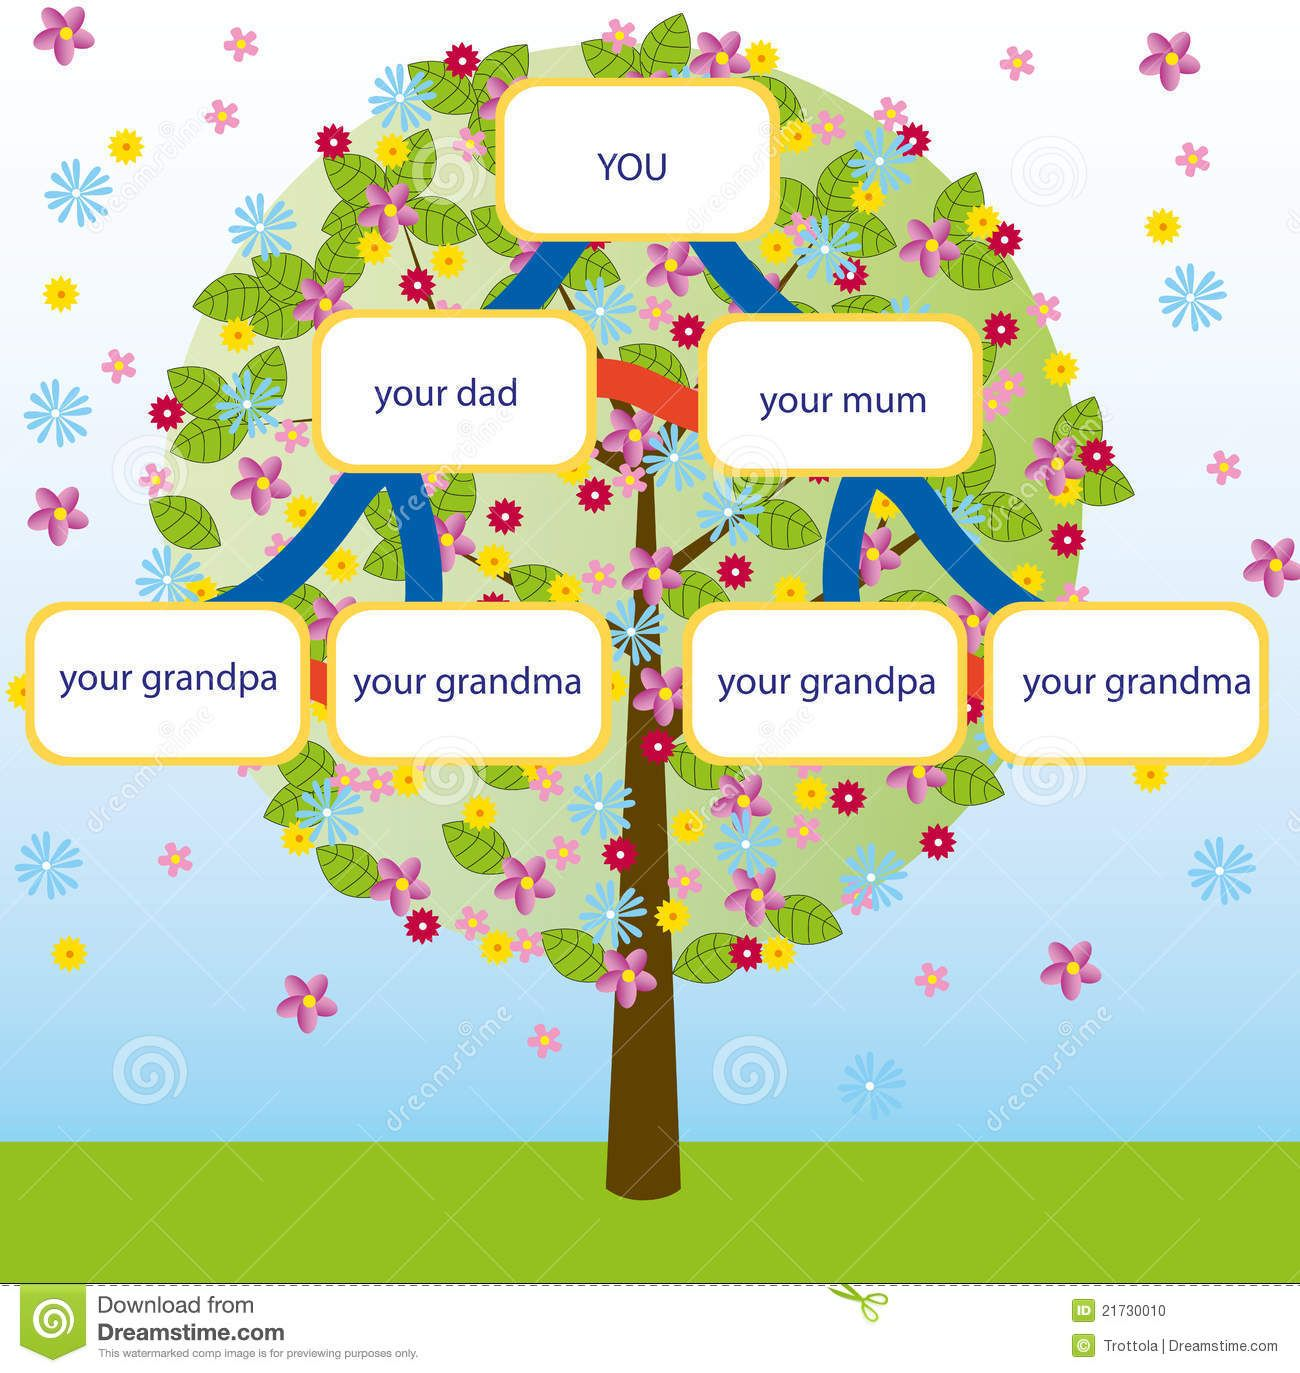 how to draw a family tree - Yahoo! Image Search Results | how to ...